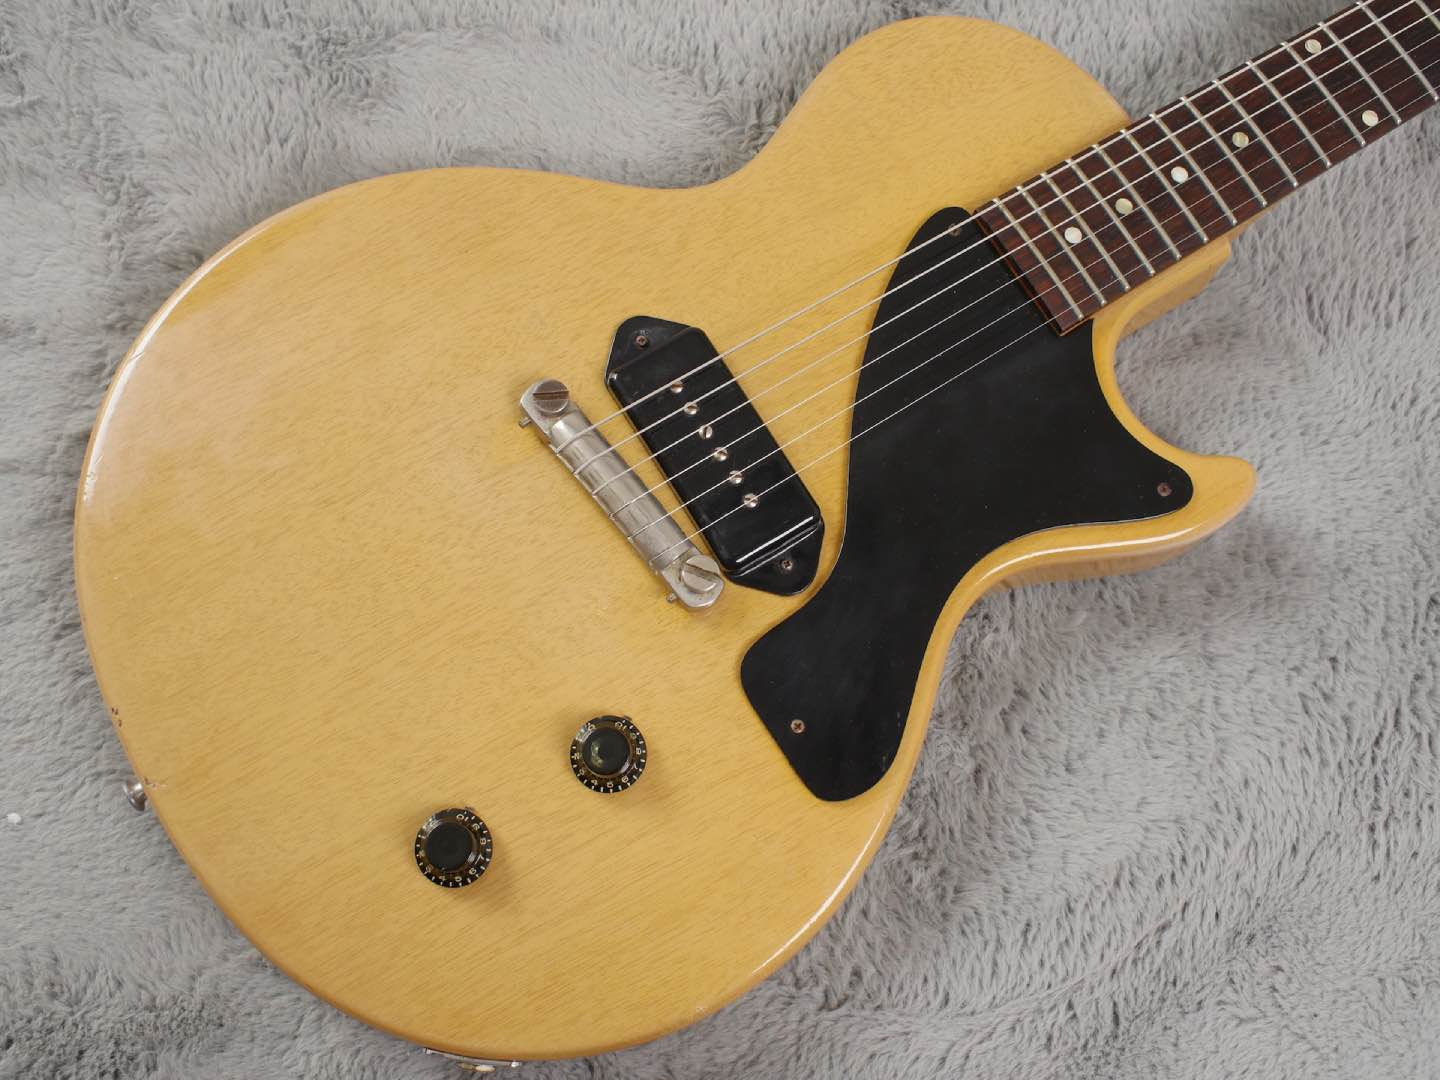 1956 Gibson Les Paul Junior TV Yellow